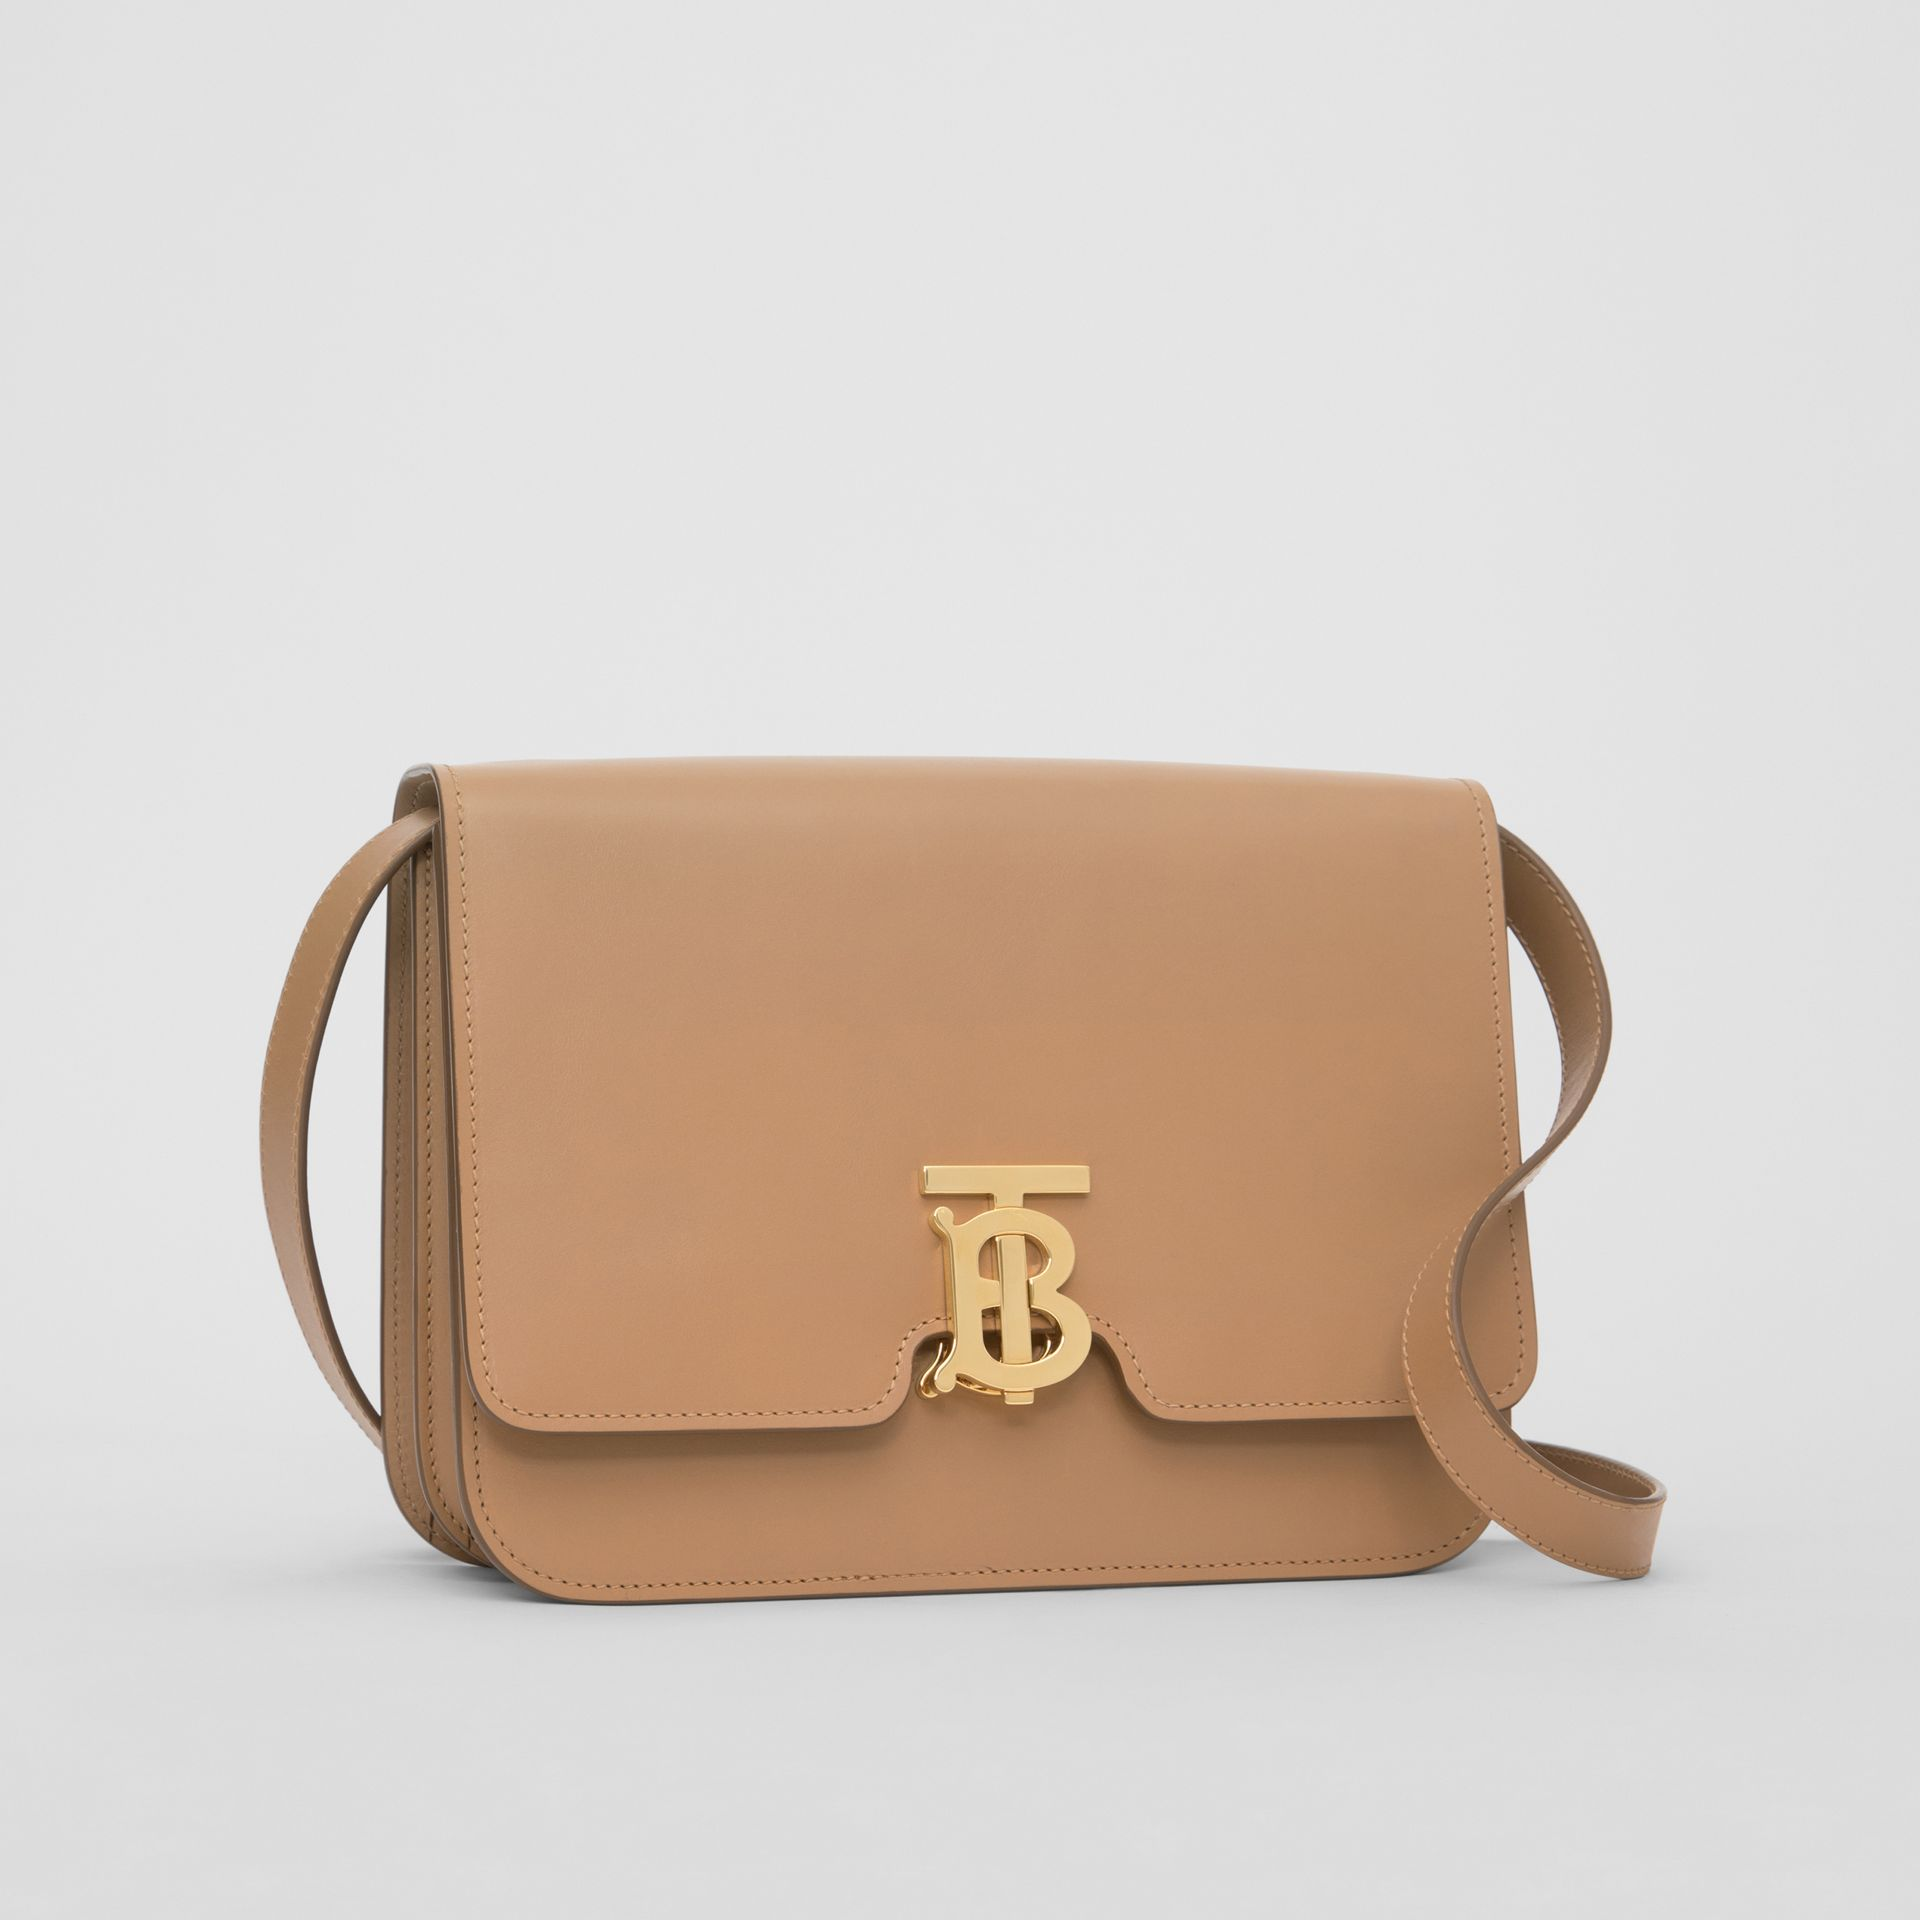 Medium Leather TB Bag in Light Camel - Women | Burberry Singapore - gallery image 3